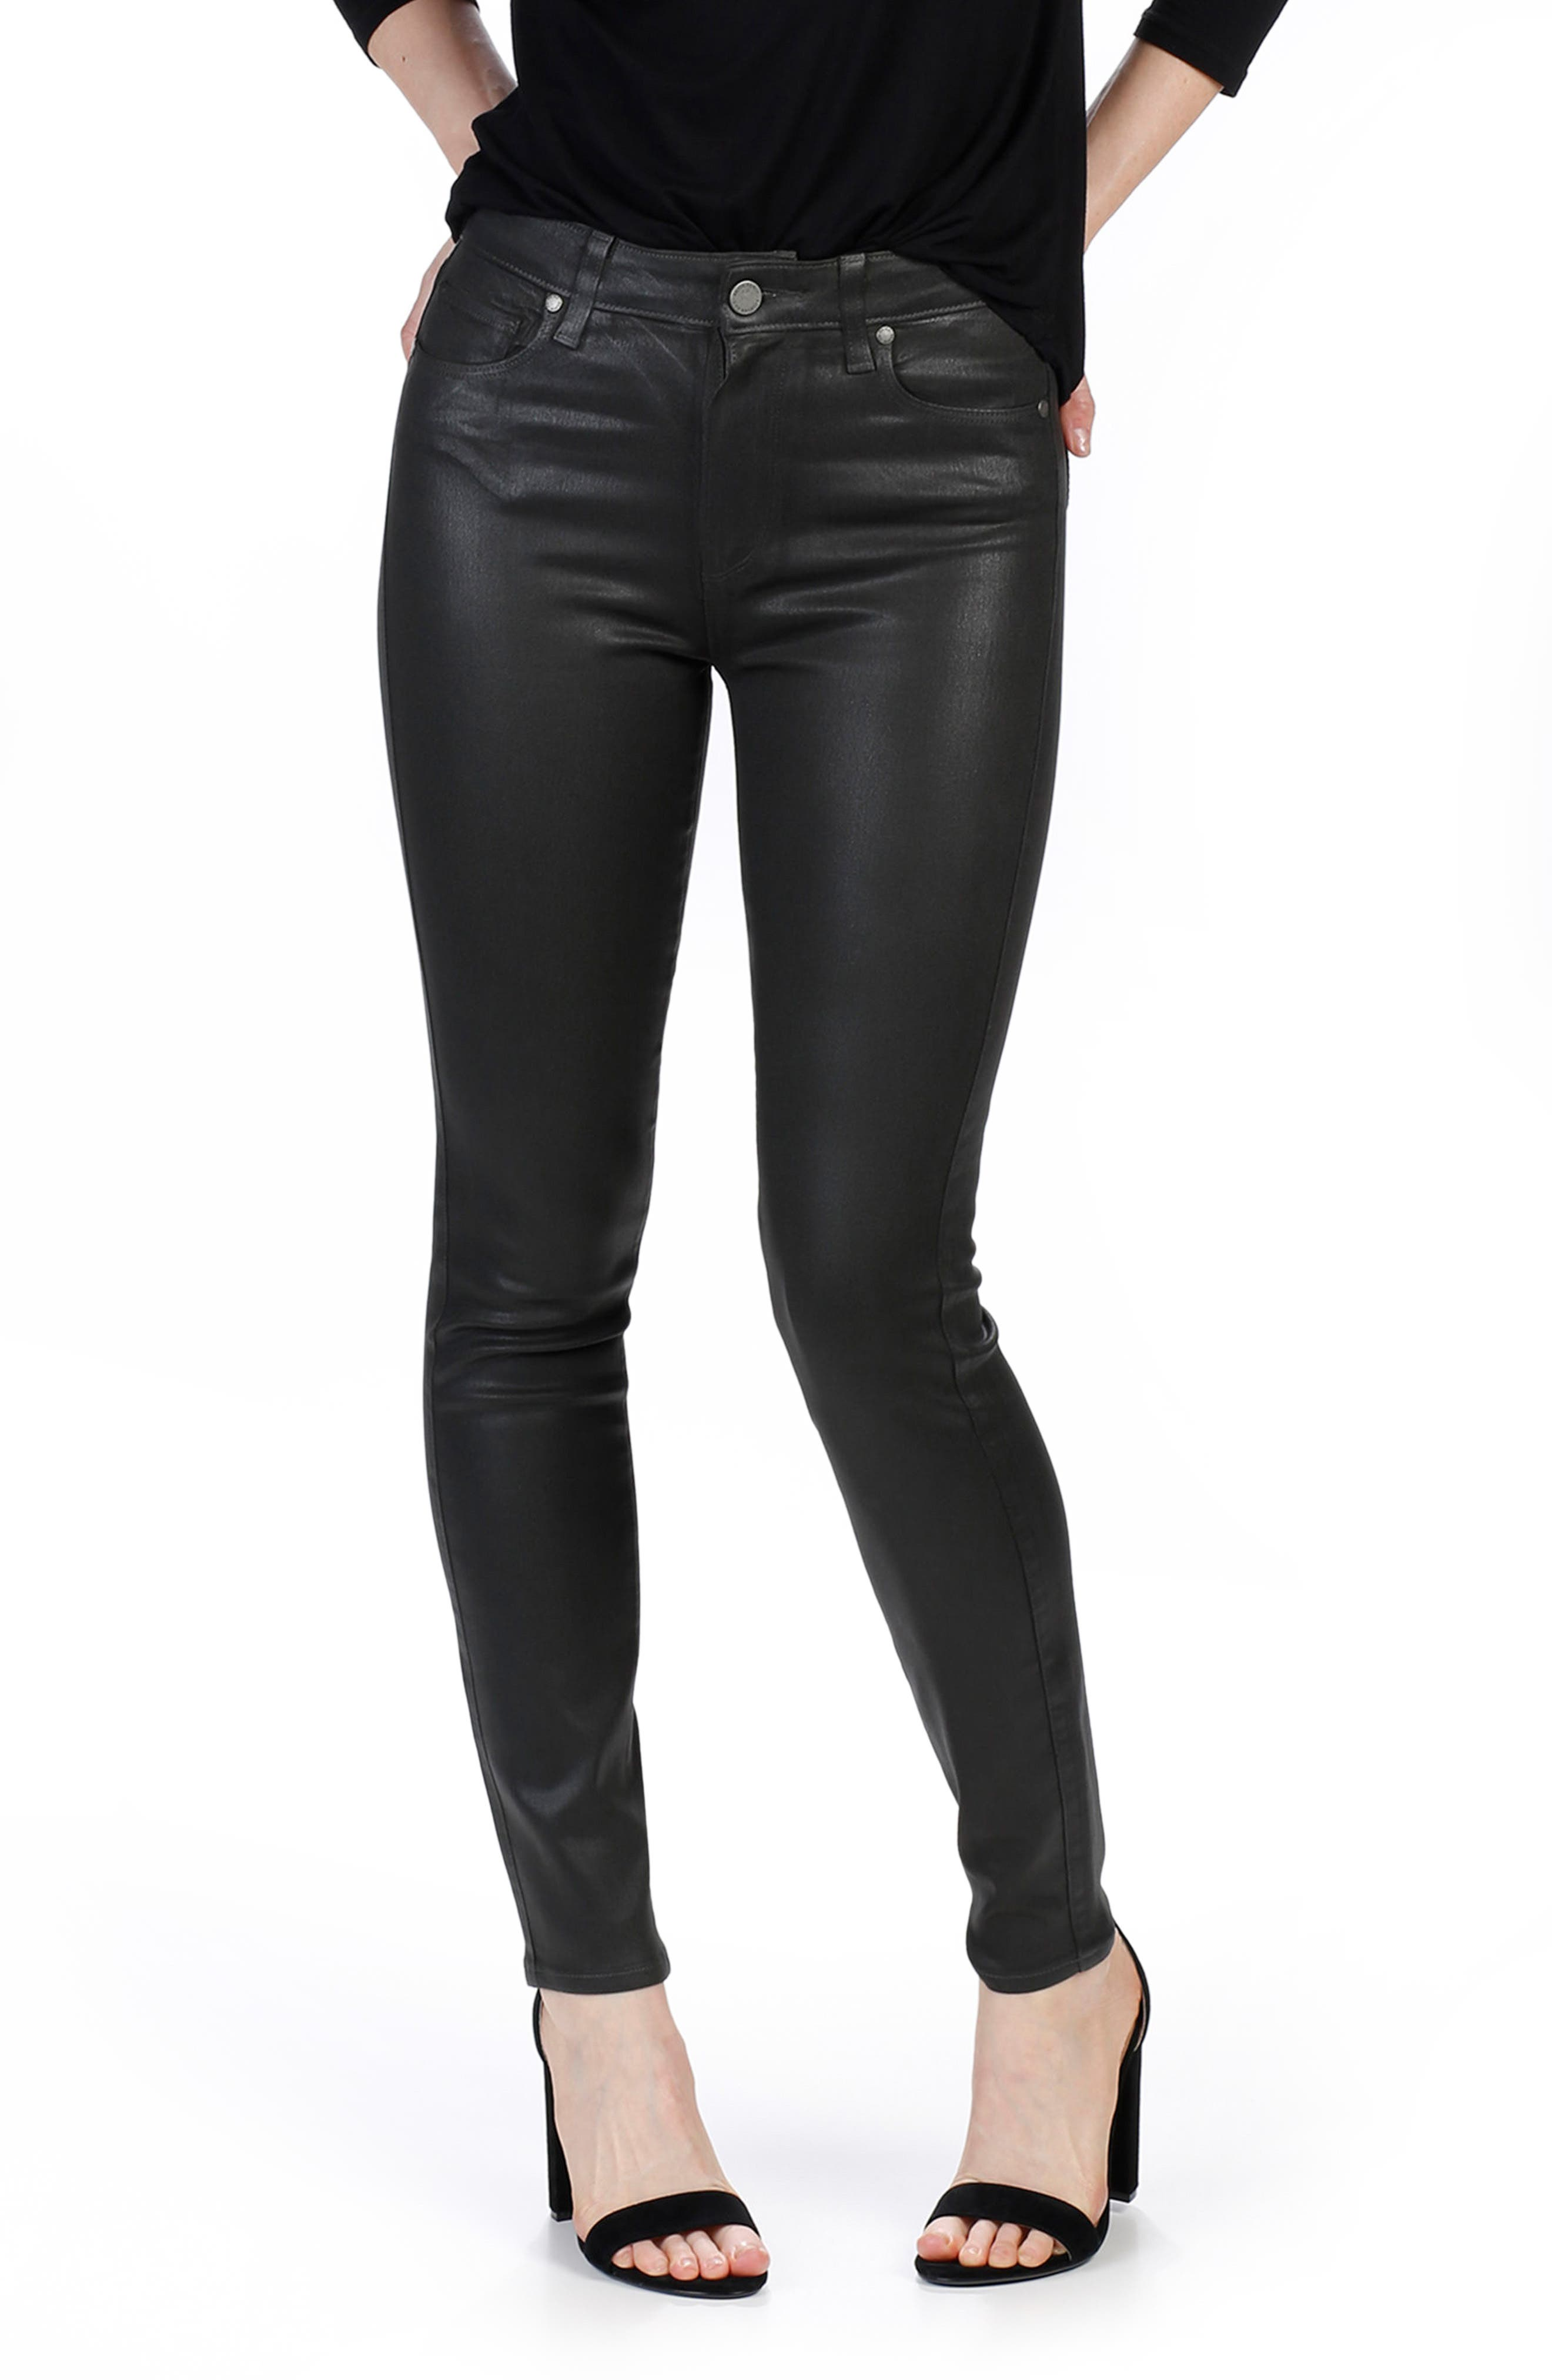 Transcend - Hoxton Coated High Waist Ankle Skinny Jeans,                             Main thumbnail 1, color,